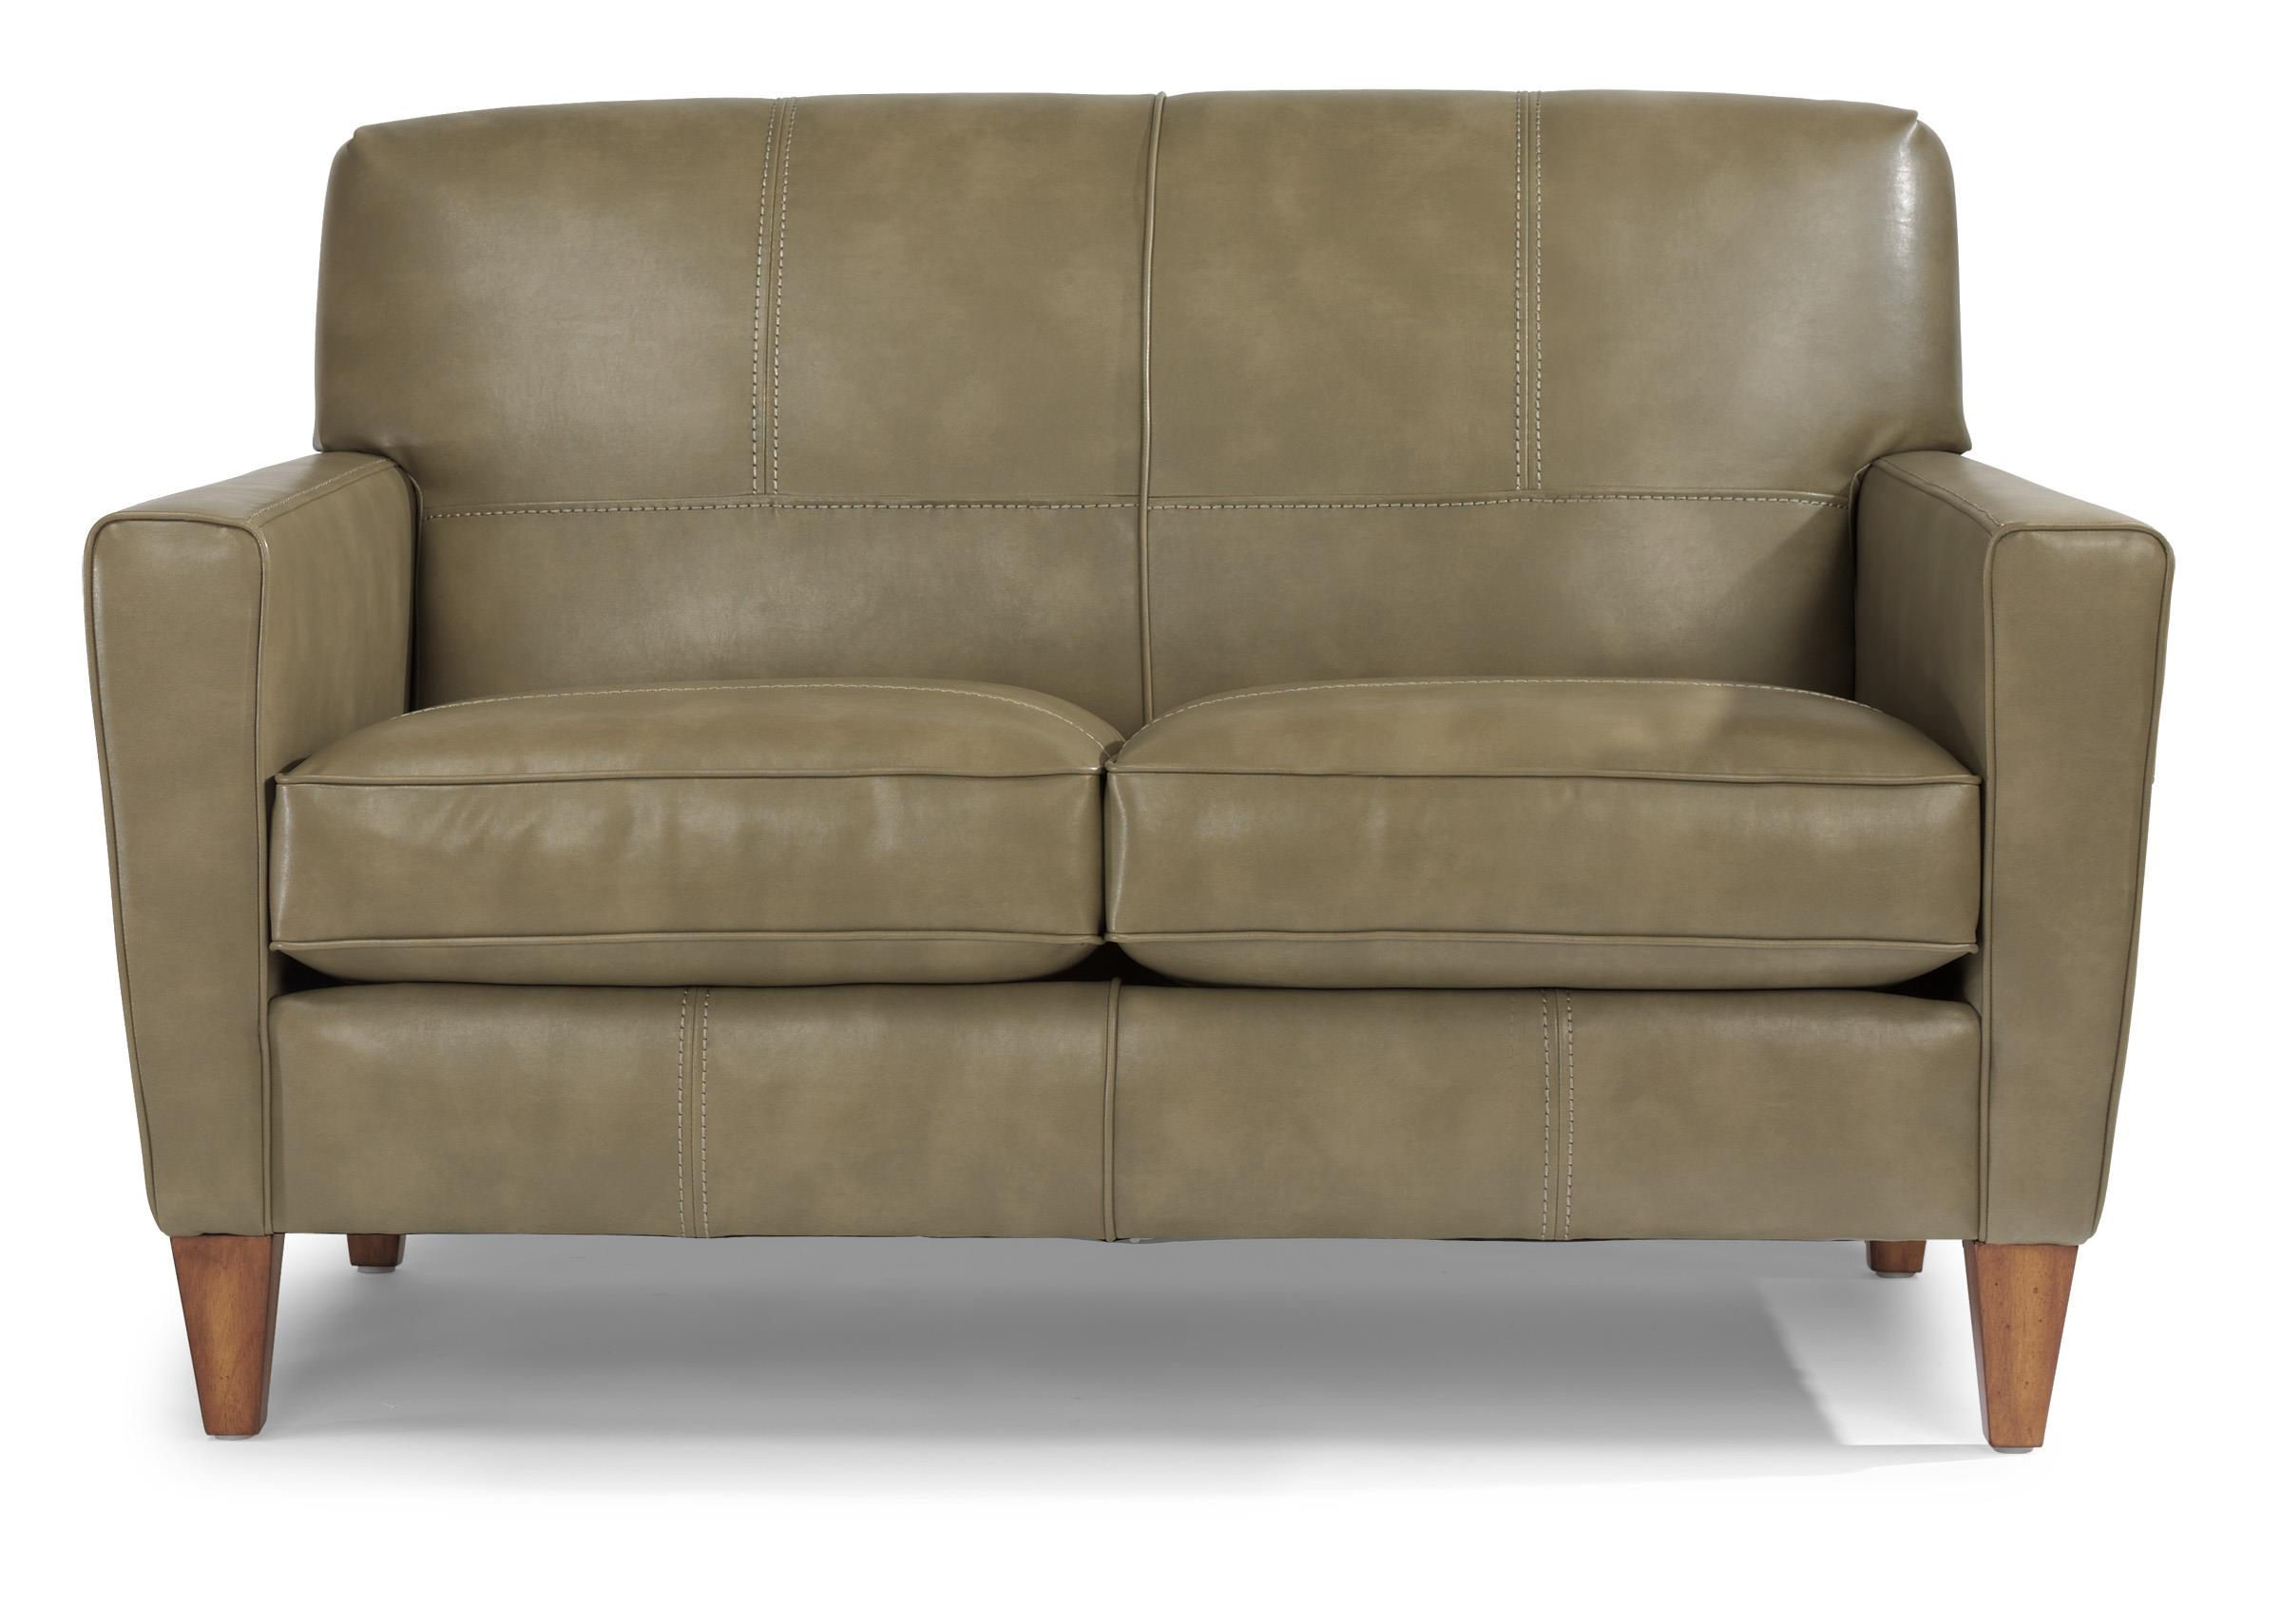 Flexsteel Digby Love Seat - Item Number: N5966-20